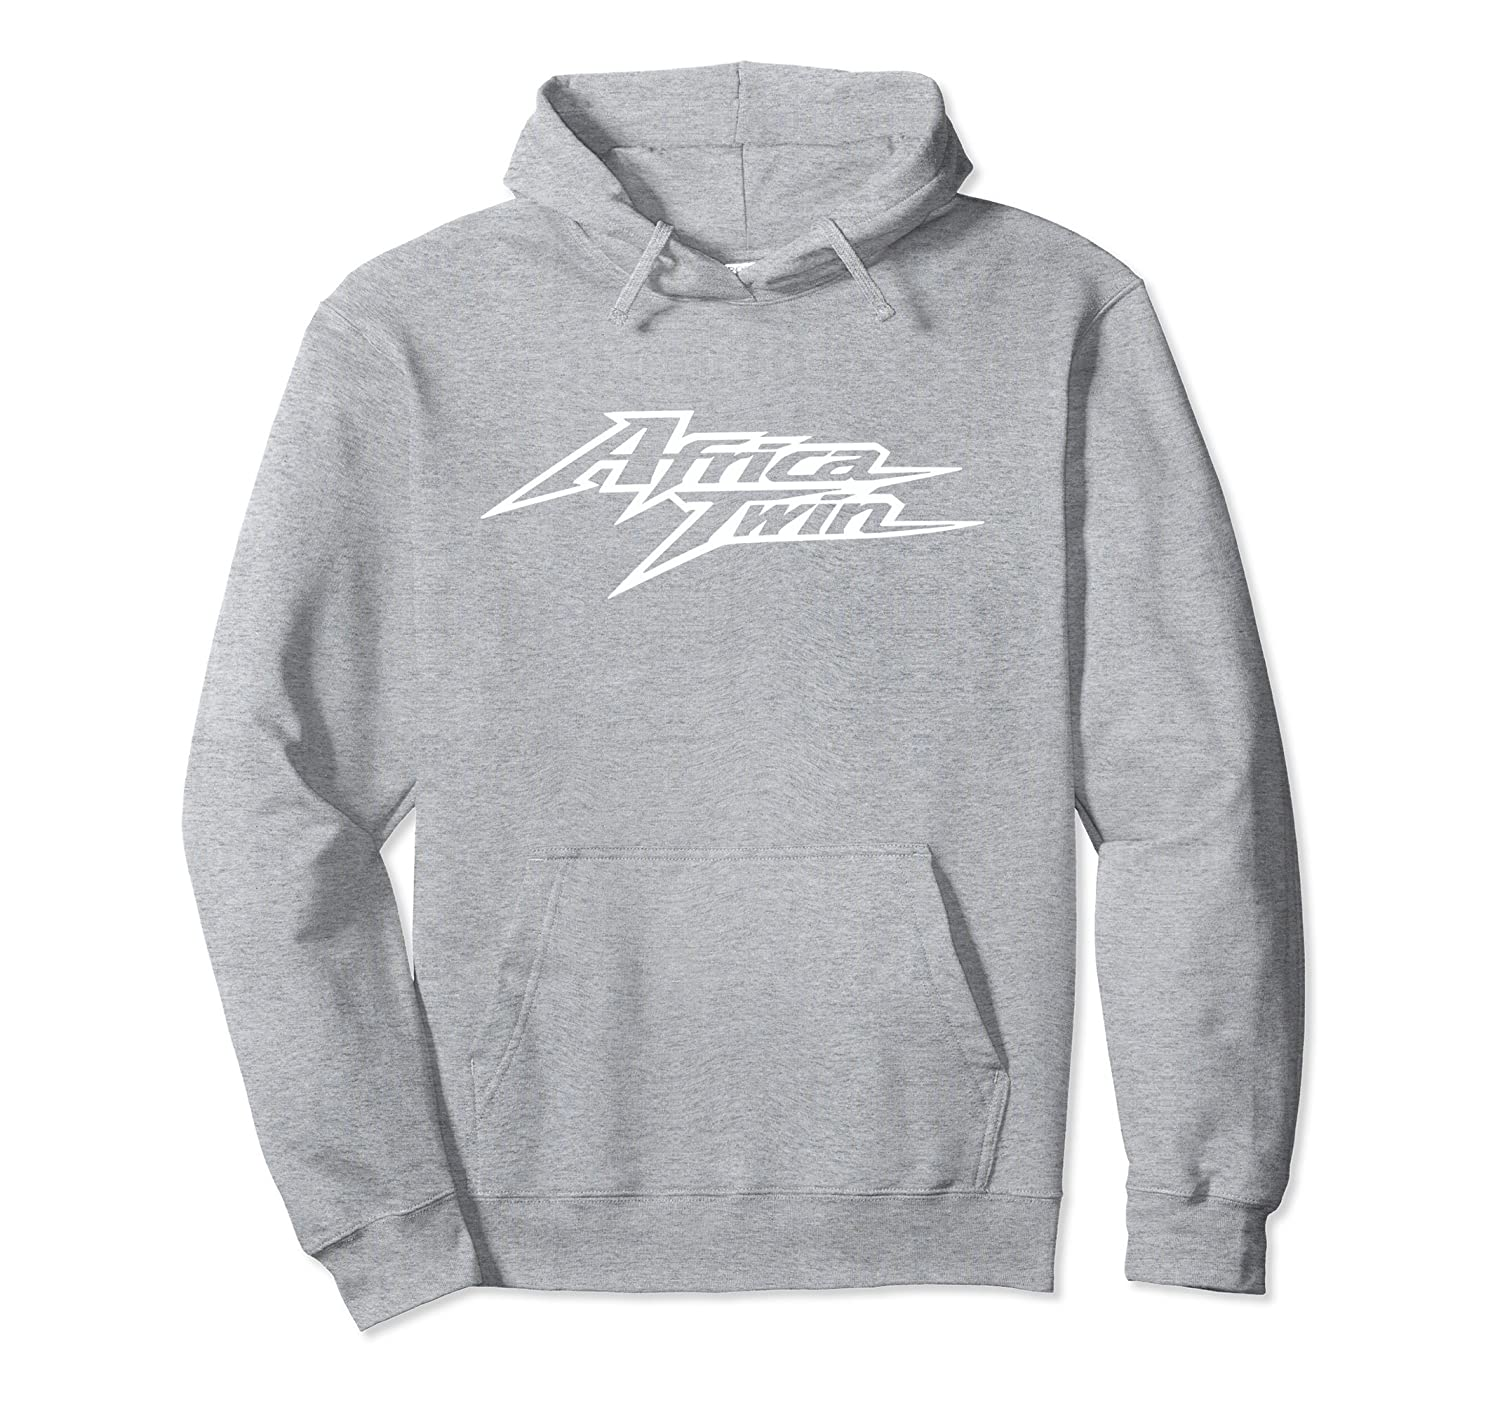 AFRICA TWIN hoodie trail riding rally motorcycle pullover-TH